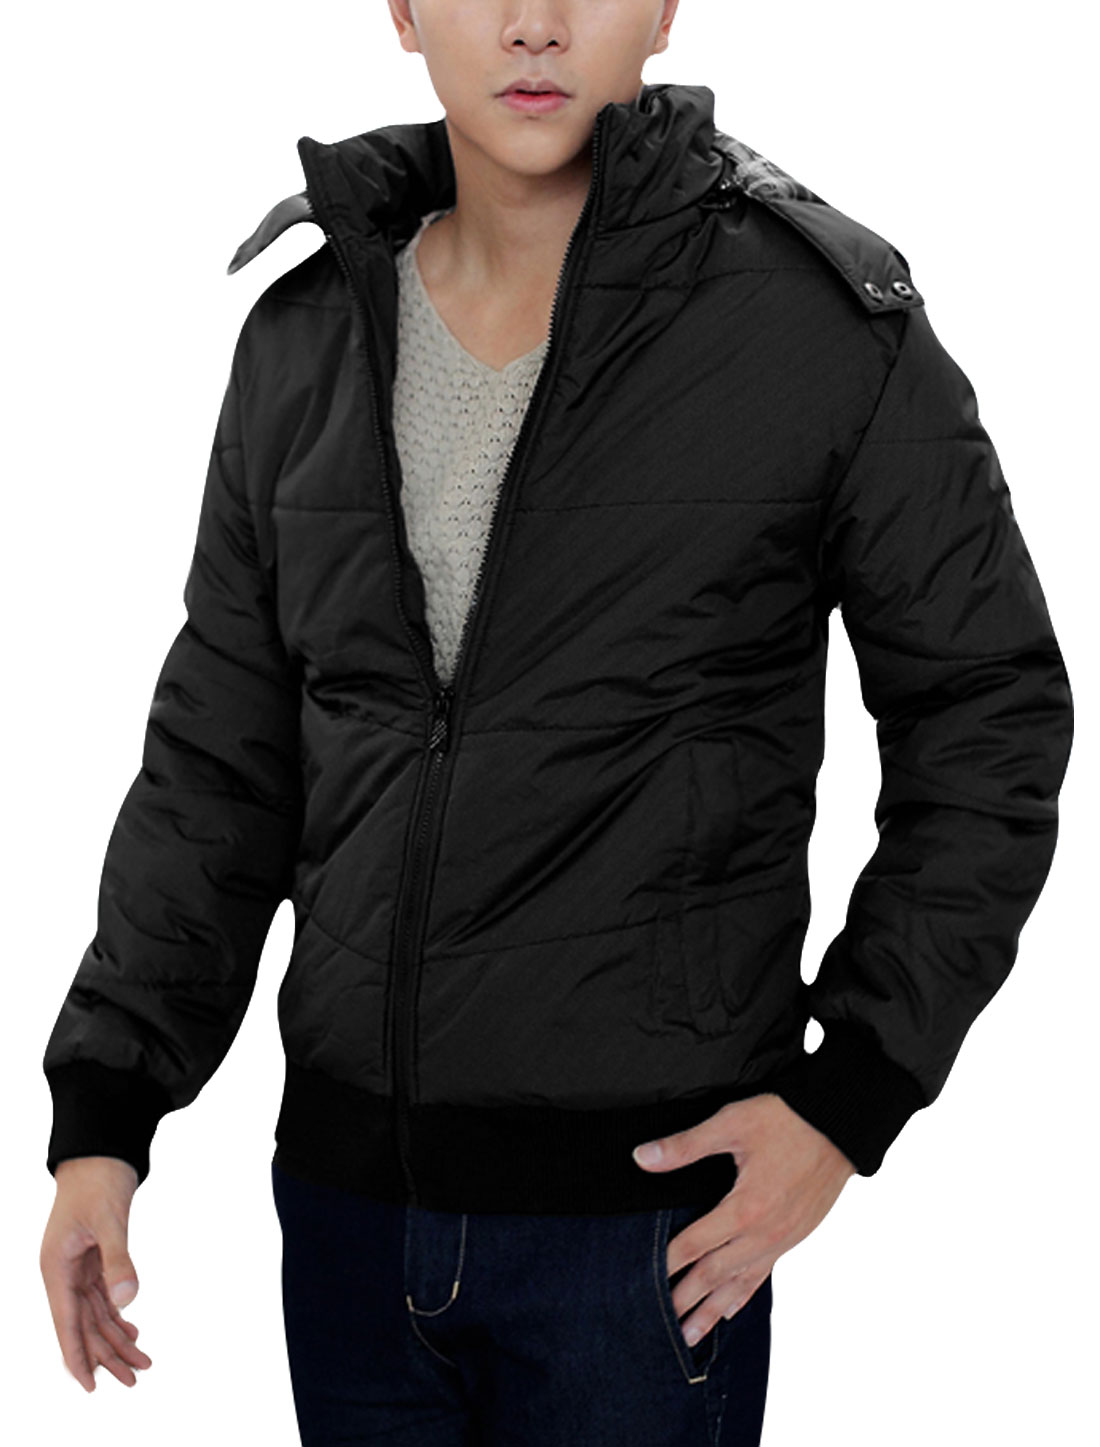 Fashion Black Zip Up Long Sleeve Winter Warm Padded Jacket for Man M